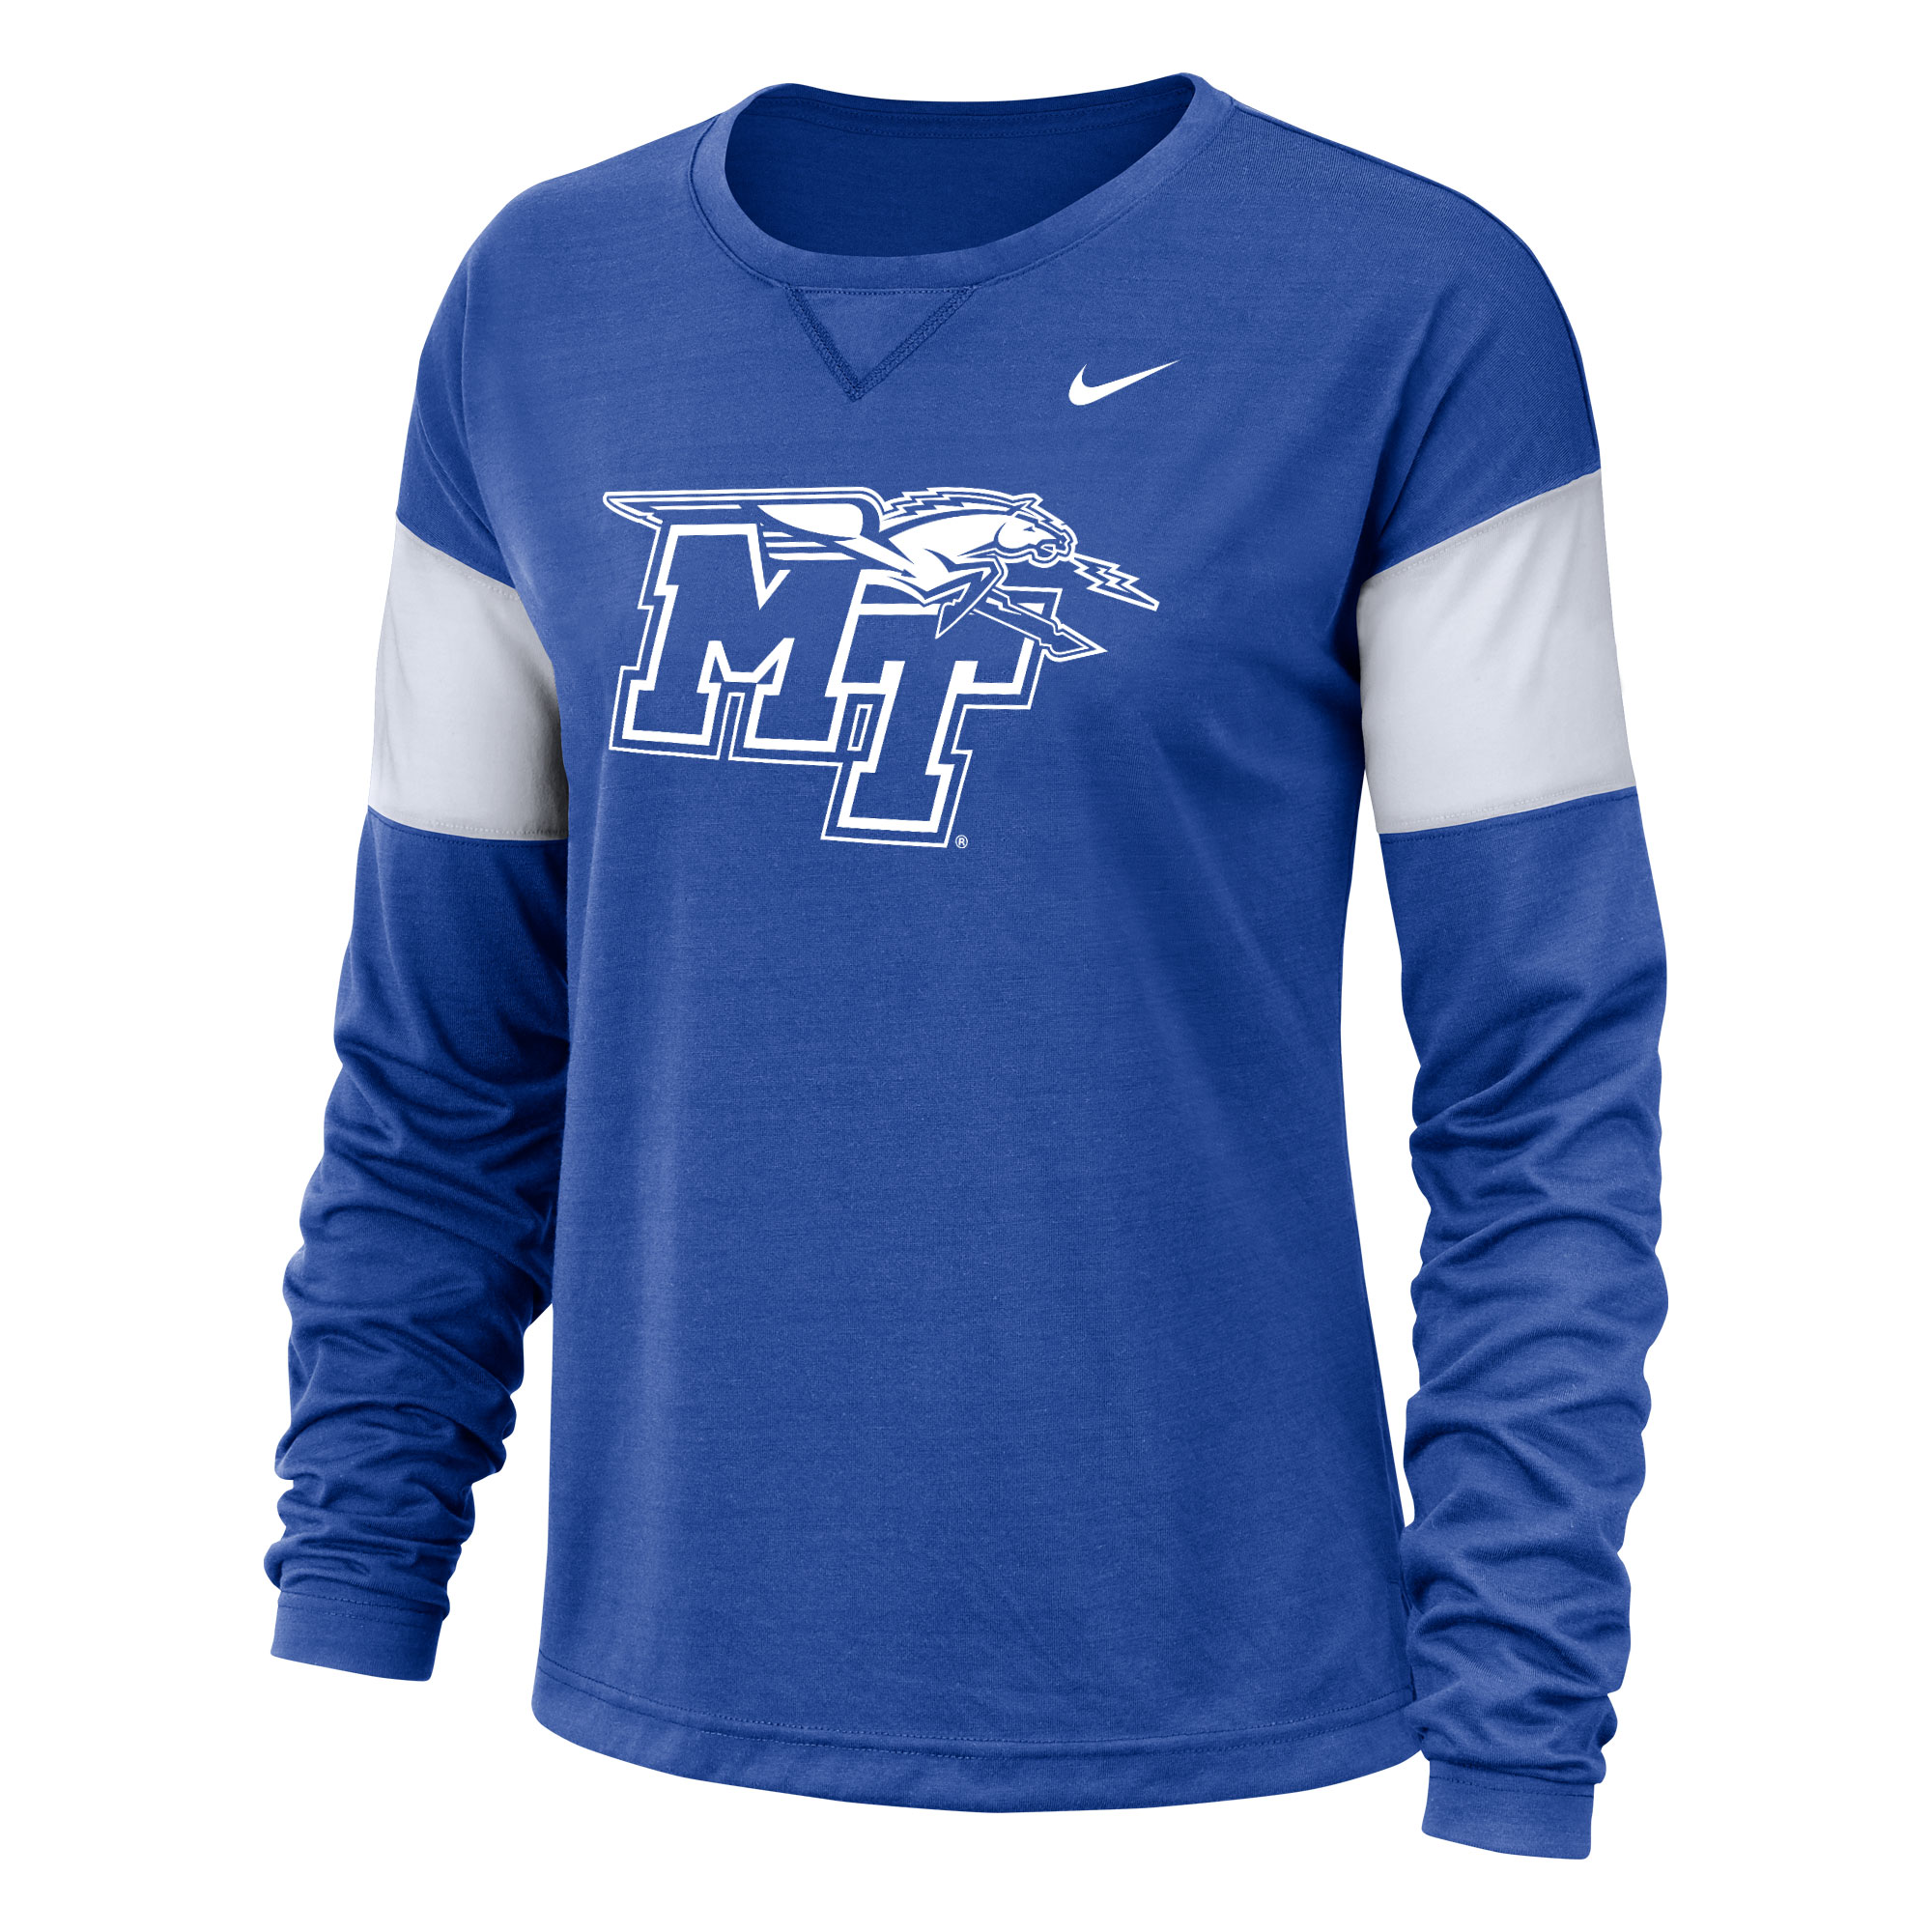 Youth MT Logo w/ Lightning LS Cotton Nike® Shirt